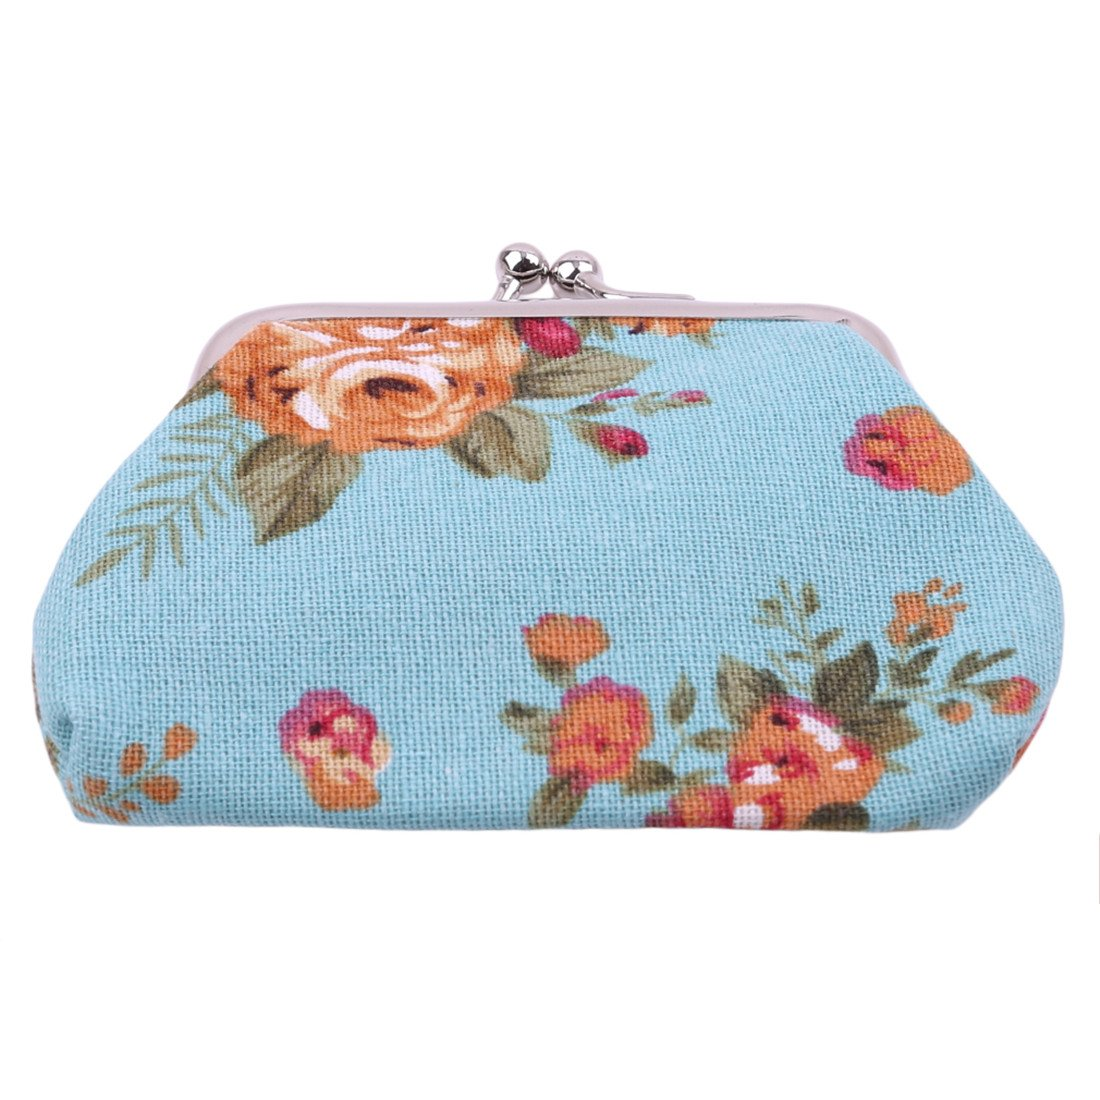 VWH Women Retro Small Wallet Flower Clutch Bag Good Flowers Gift Bags (blue) by VWH (Image #2)